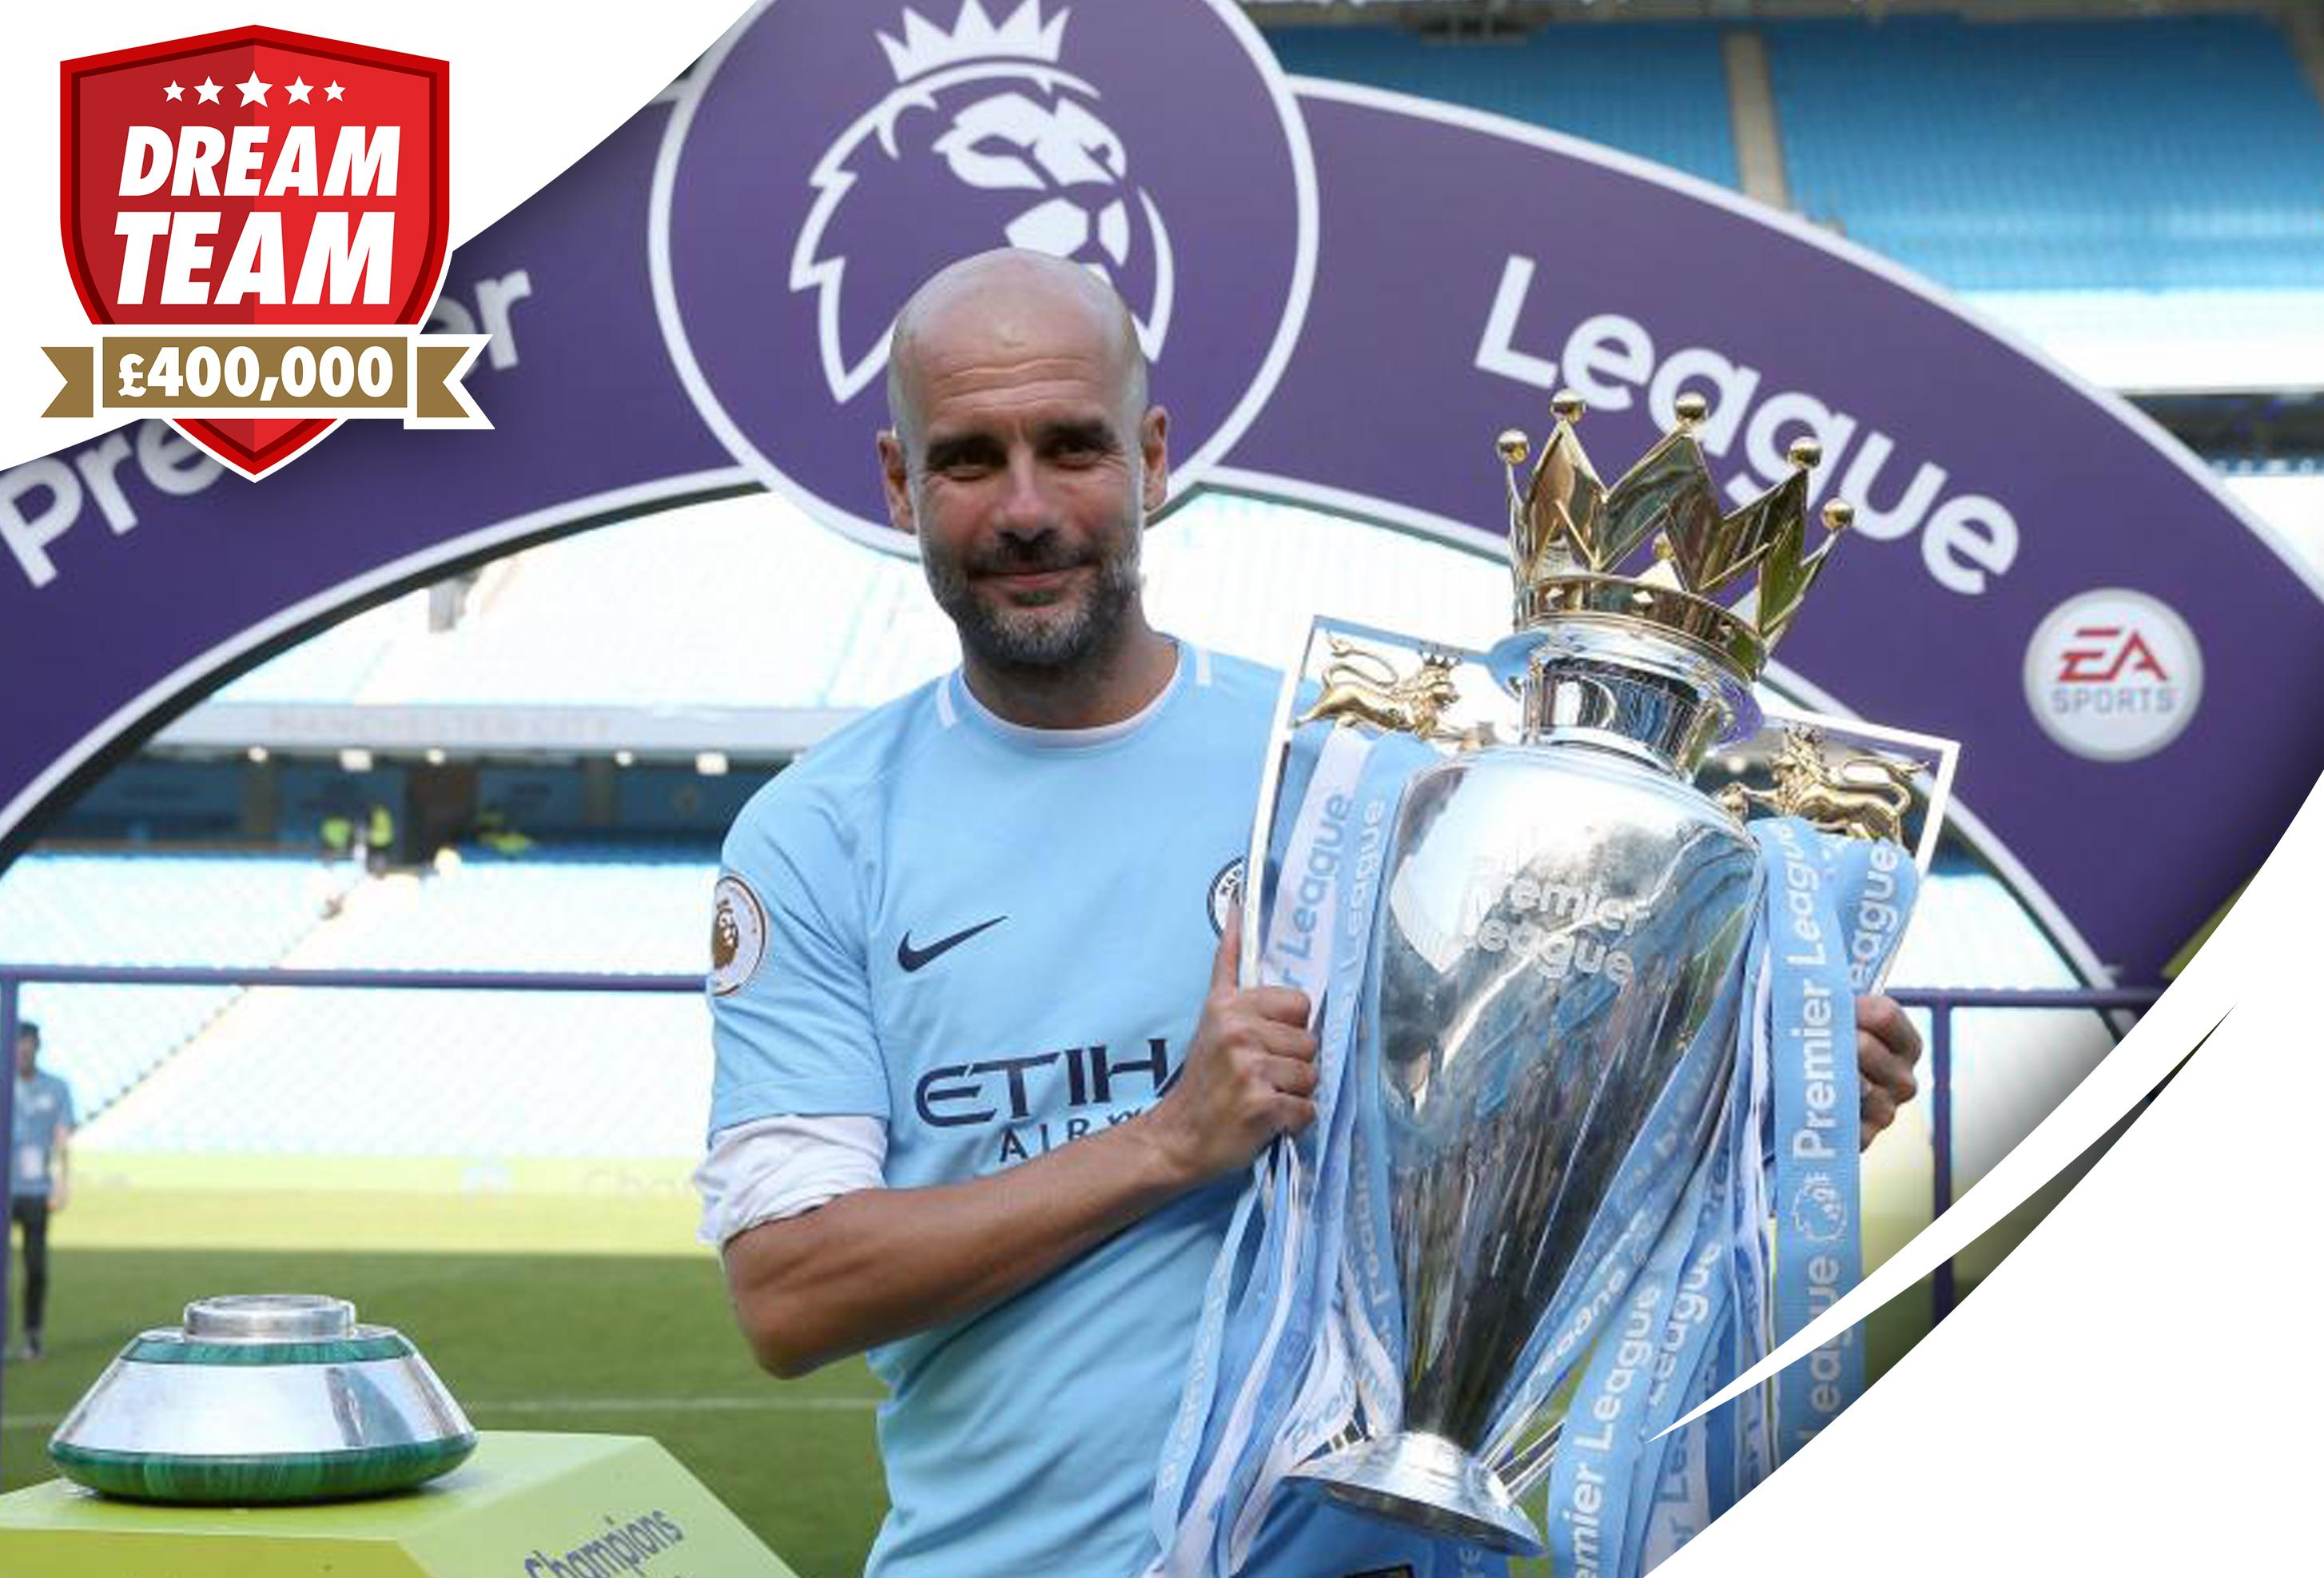 Fancy yourself as the next Pep? Or are you just a bald fraud?